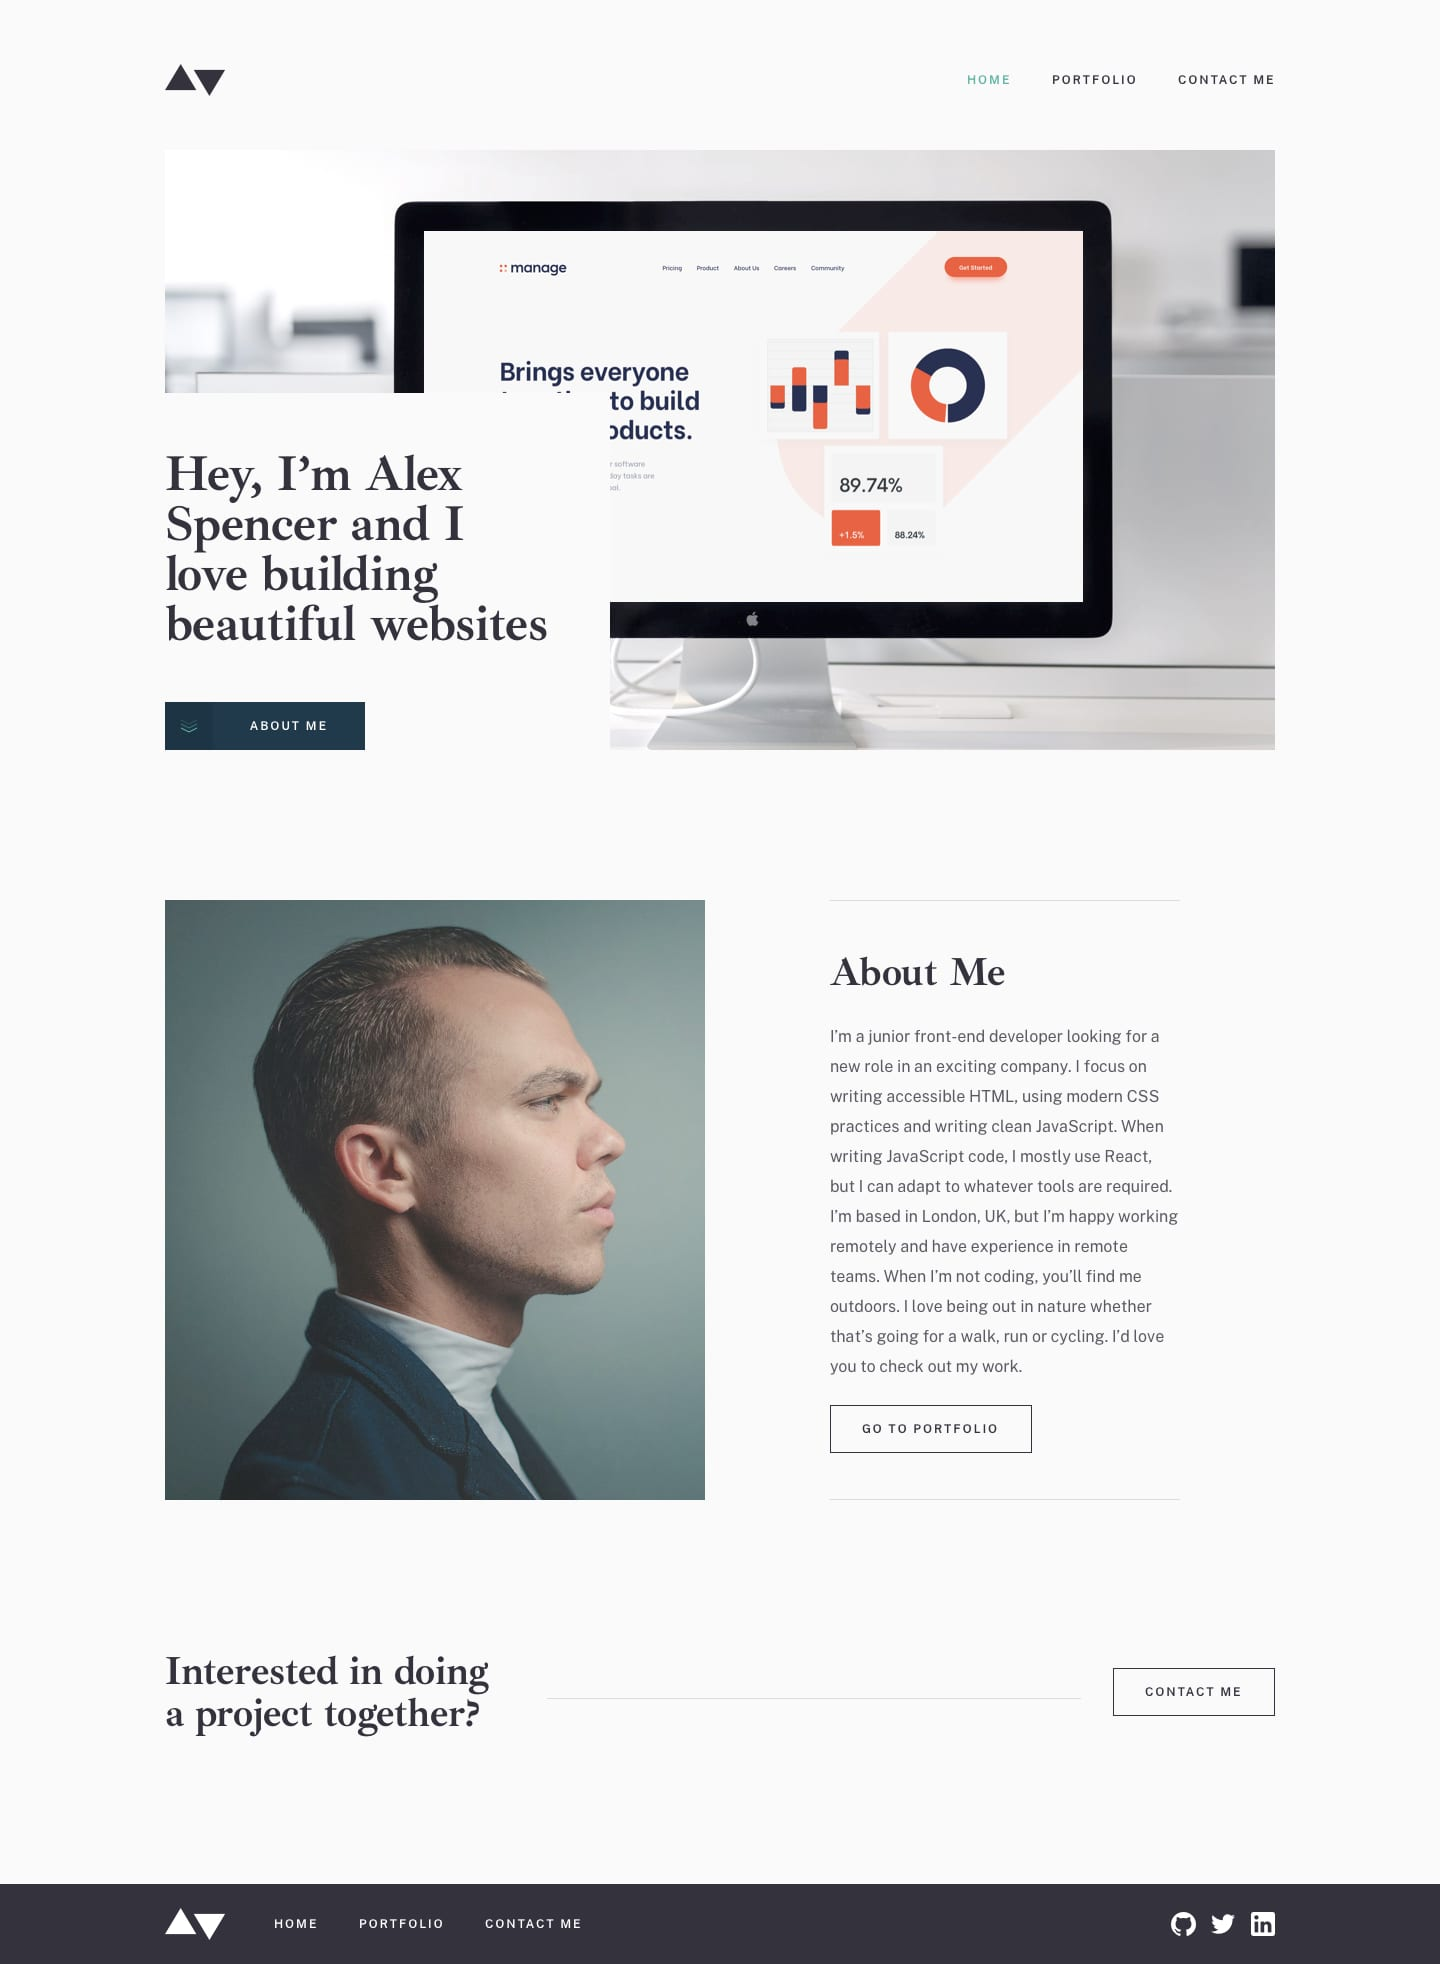 Design preview for Minimalist portfolio website coding challenge